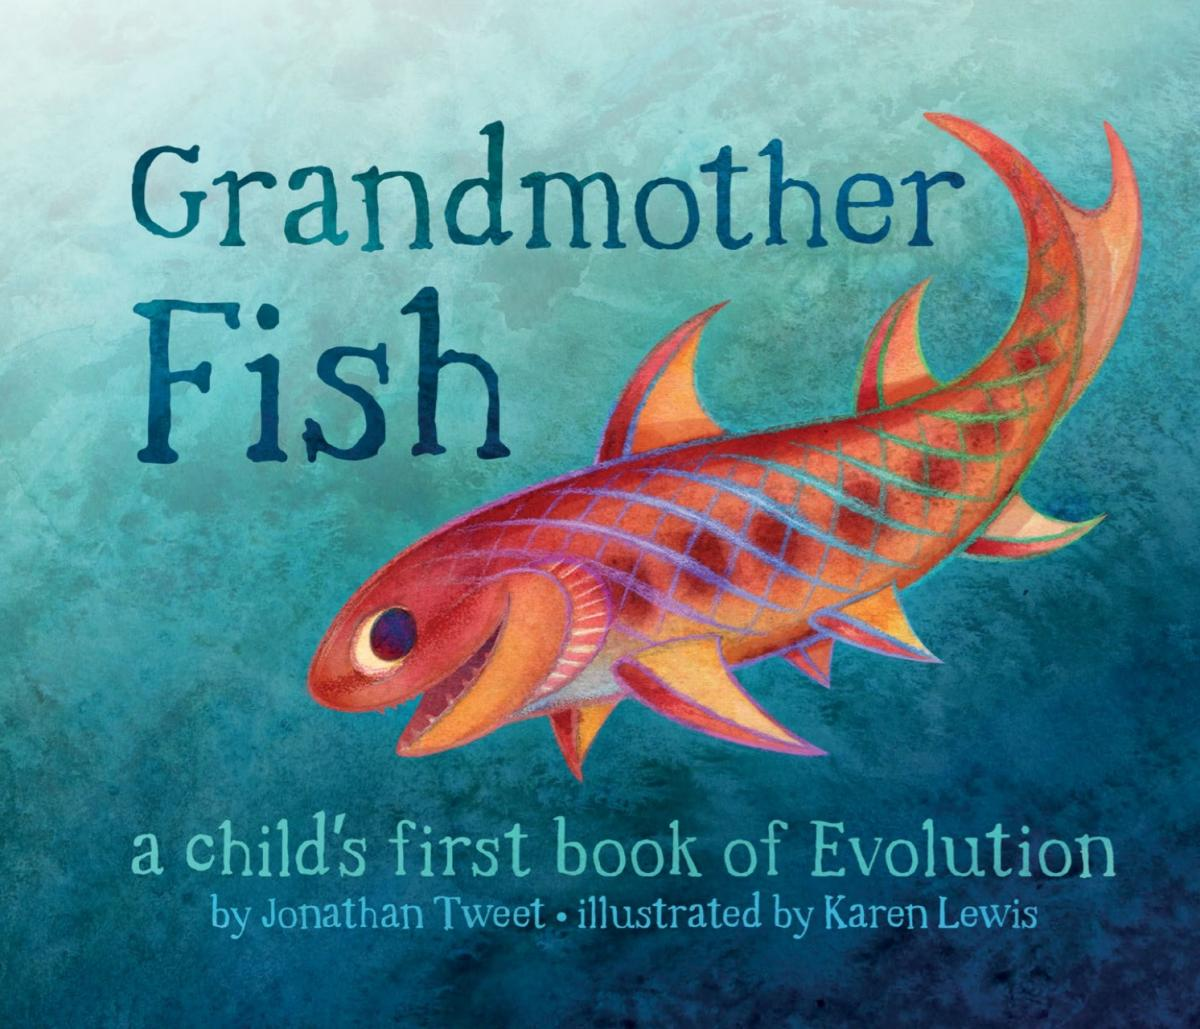 A New Book Introduces Evolution to Preschoolers: Grandmother Fish https://t.co/9fM2jXd3MC https://t.co/UPSlK54Wo4